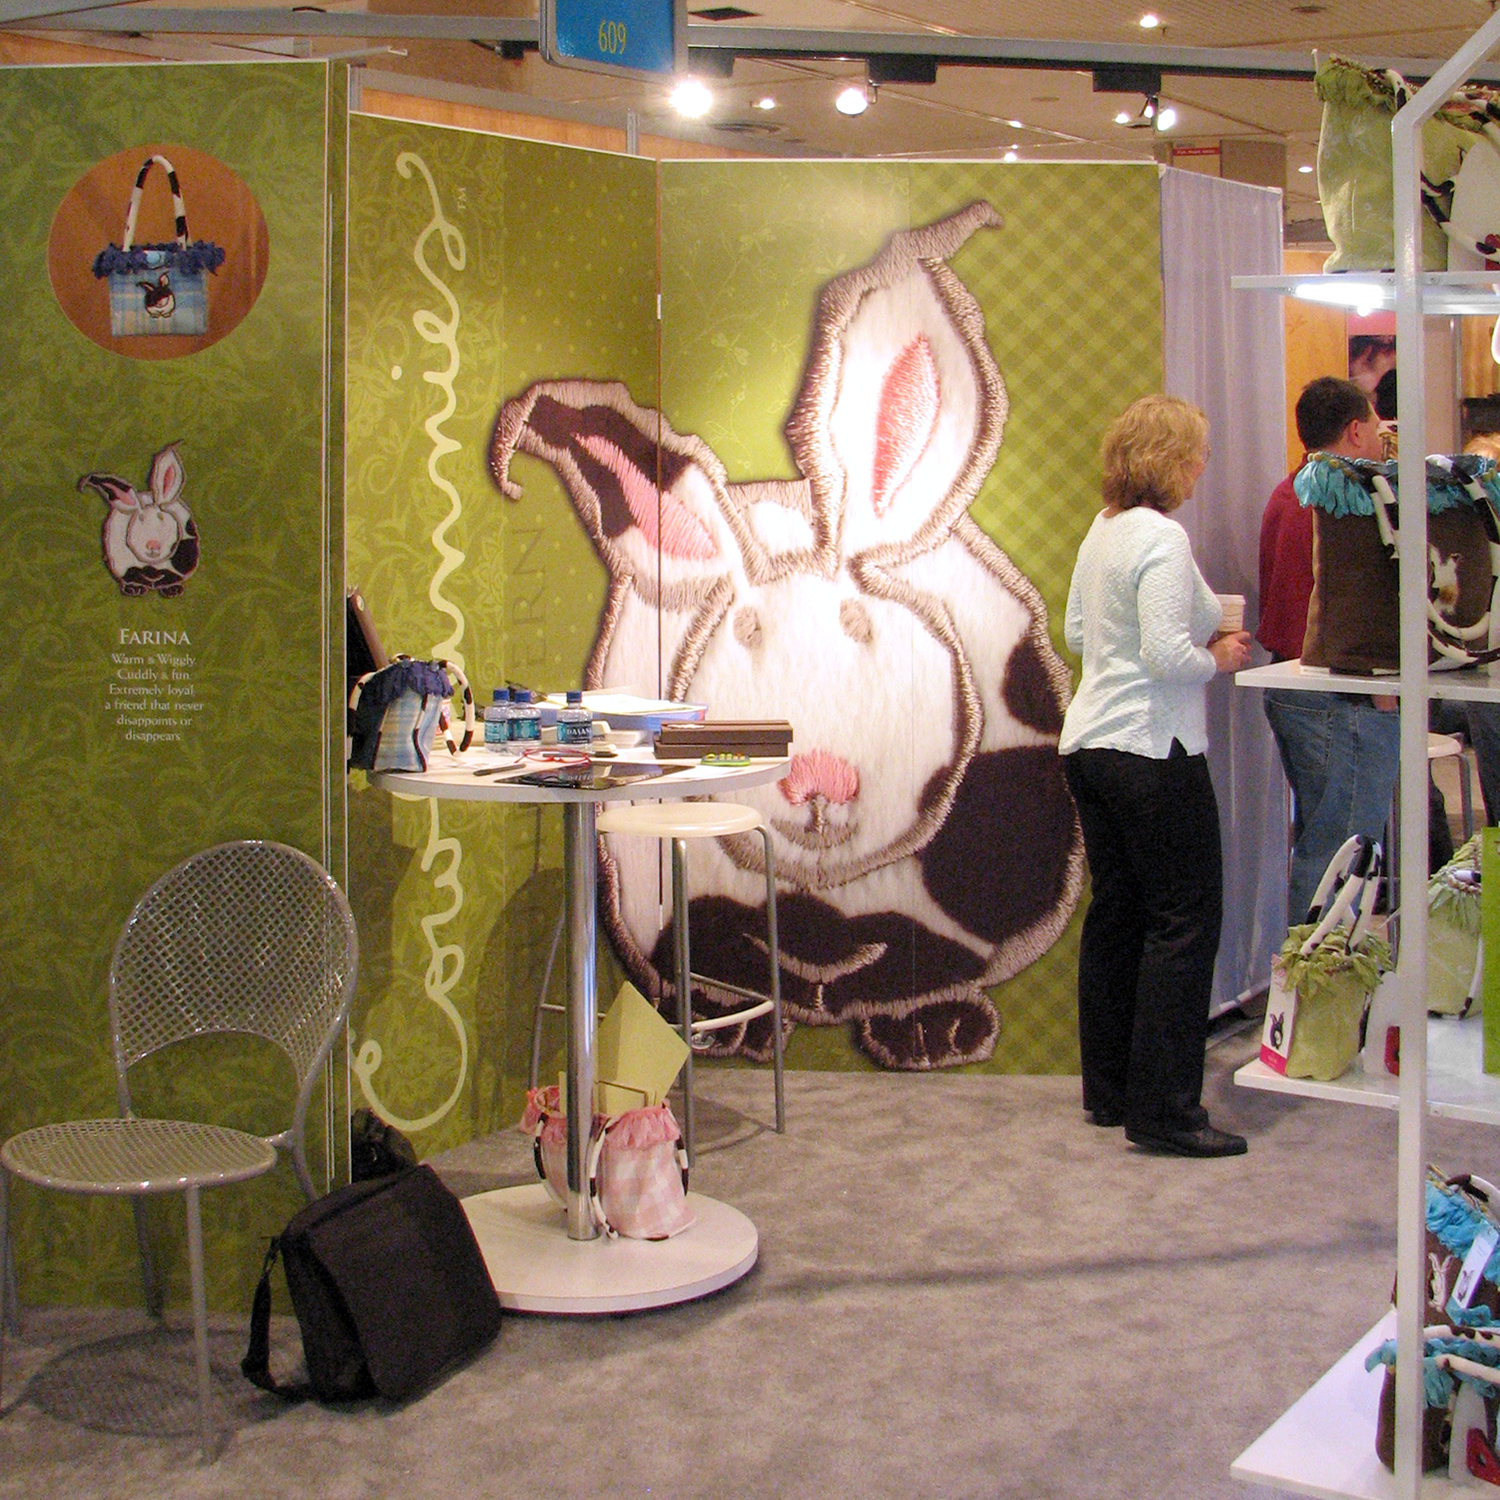 EXHIBITION DESIGN/TRADE SHOW BOOTH - Cowbunnies - ©UnParalleled, LLC dba UP-Ideas / Roger Sawhill / Mark Braught - Atlanta, Georgia | Lawrenceville, Georgia | Commerce, Georgia